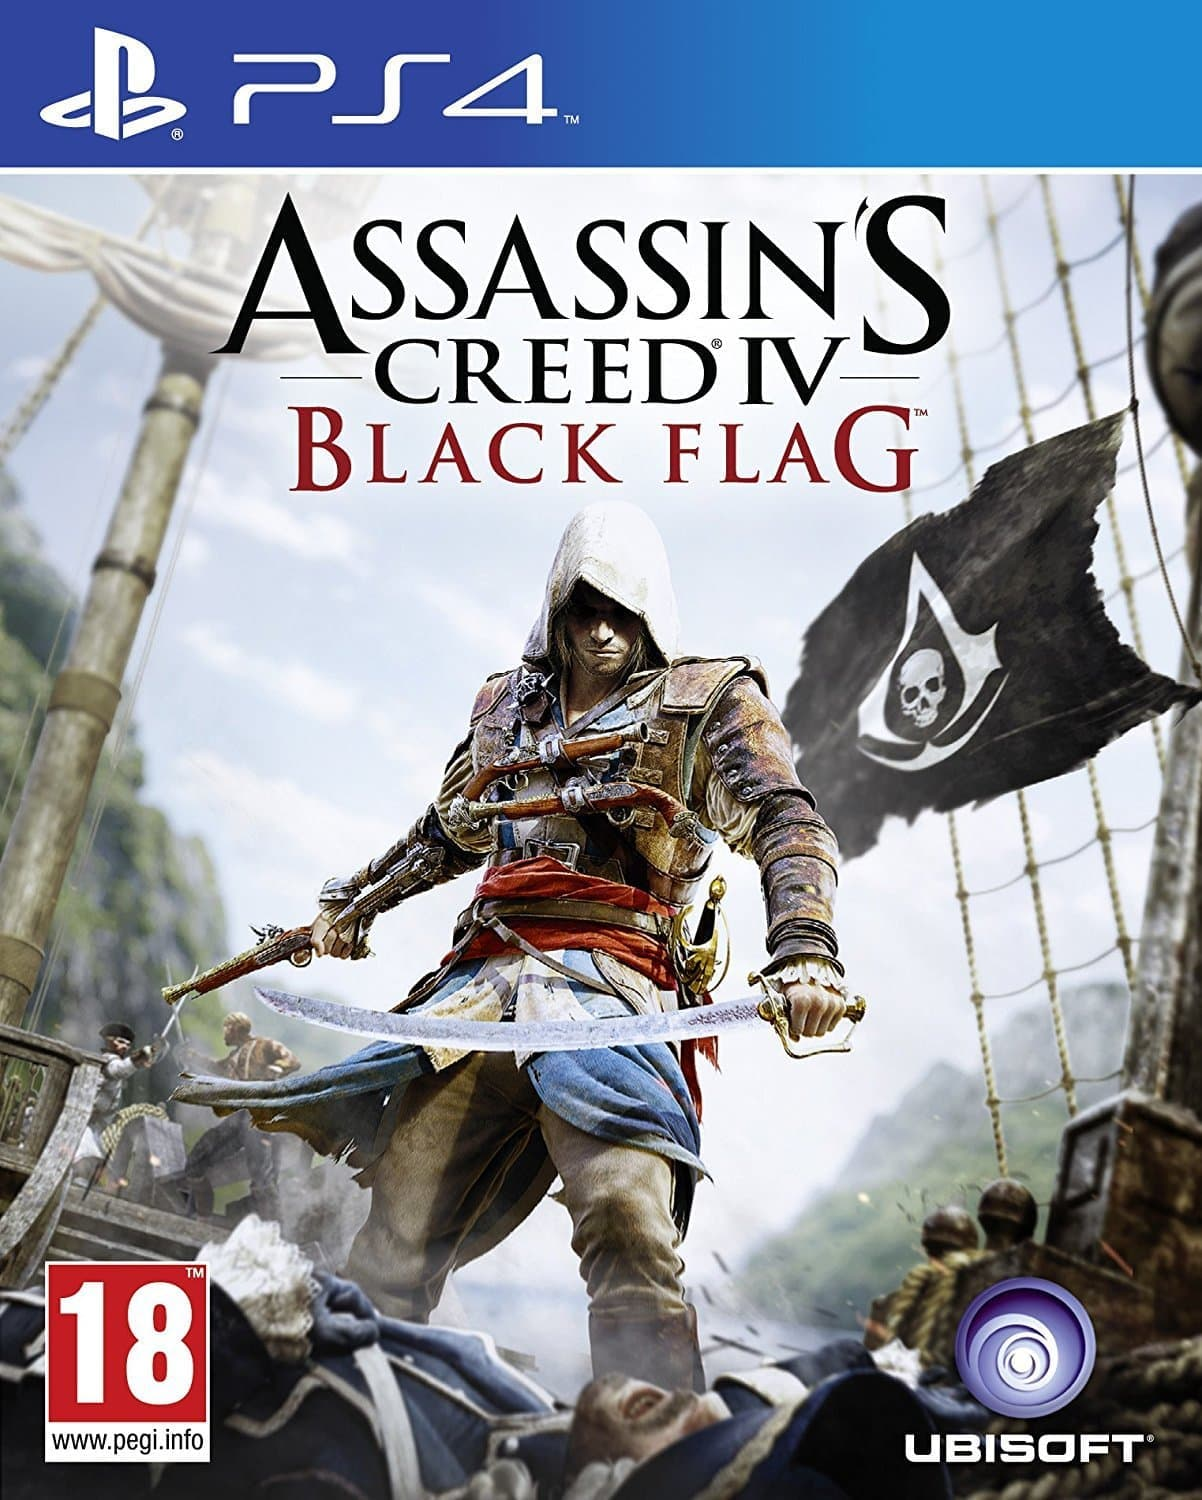 Assassin's Creed IV: Чёрный флаг (PS4, англ.версия) от  MegaStore.kg